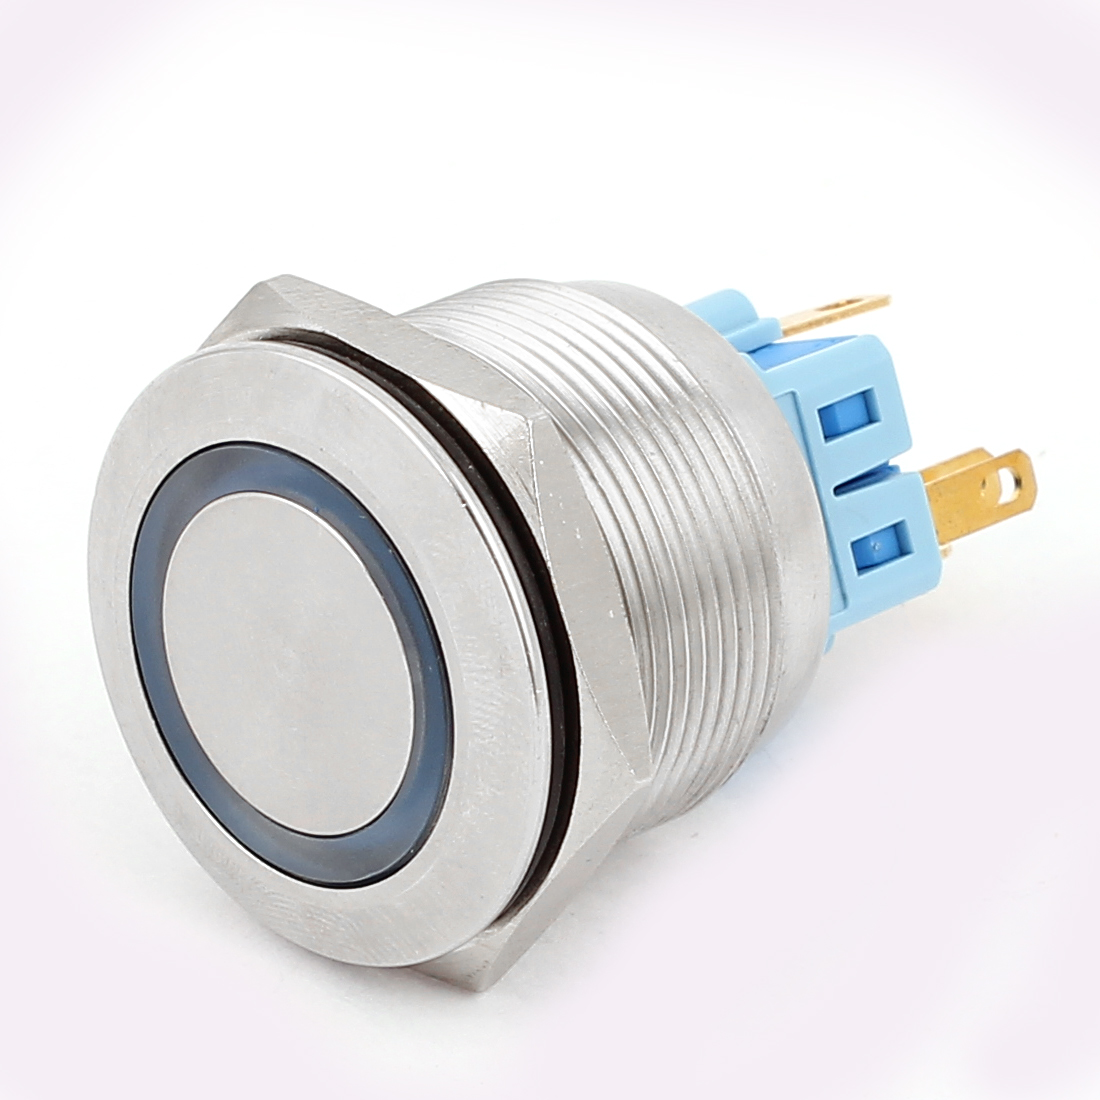 DC 12V 20mm Blue LED Light 25mm Mounted Thread 6 Pins DPST NO/NC Momentary Push Button Switch